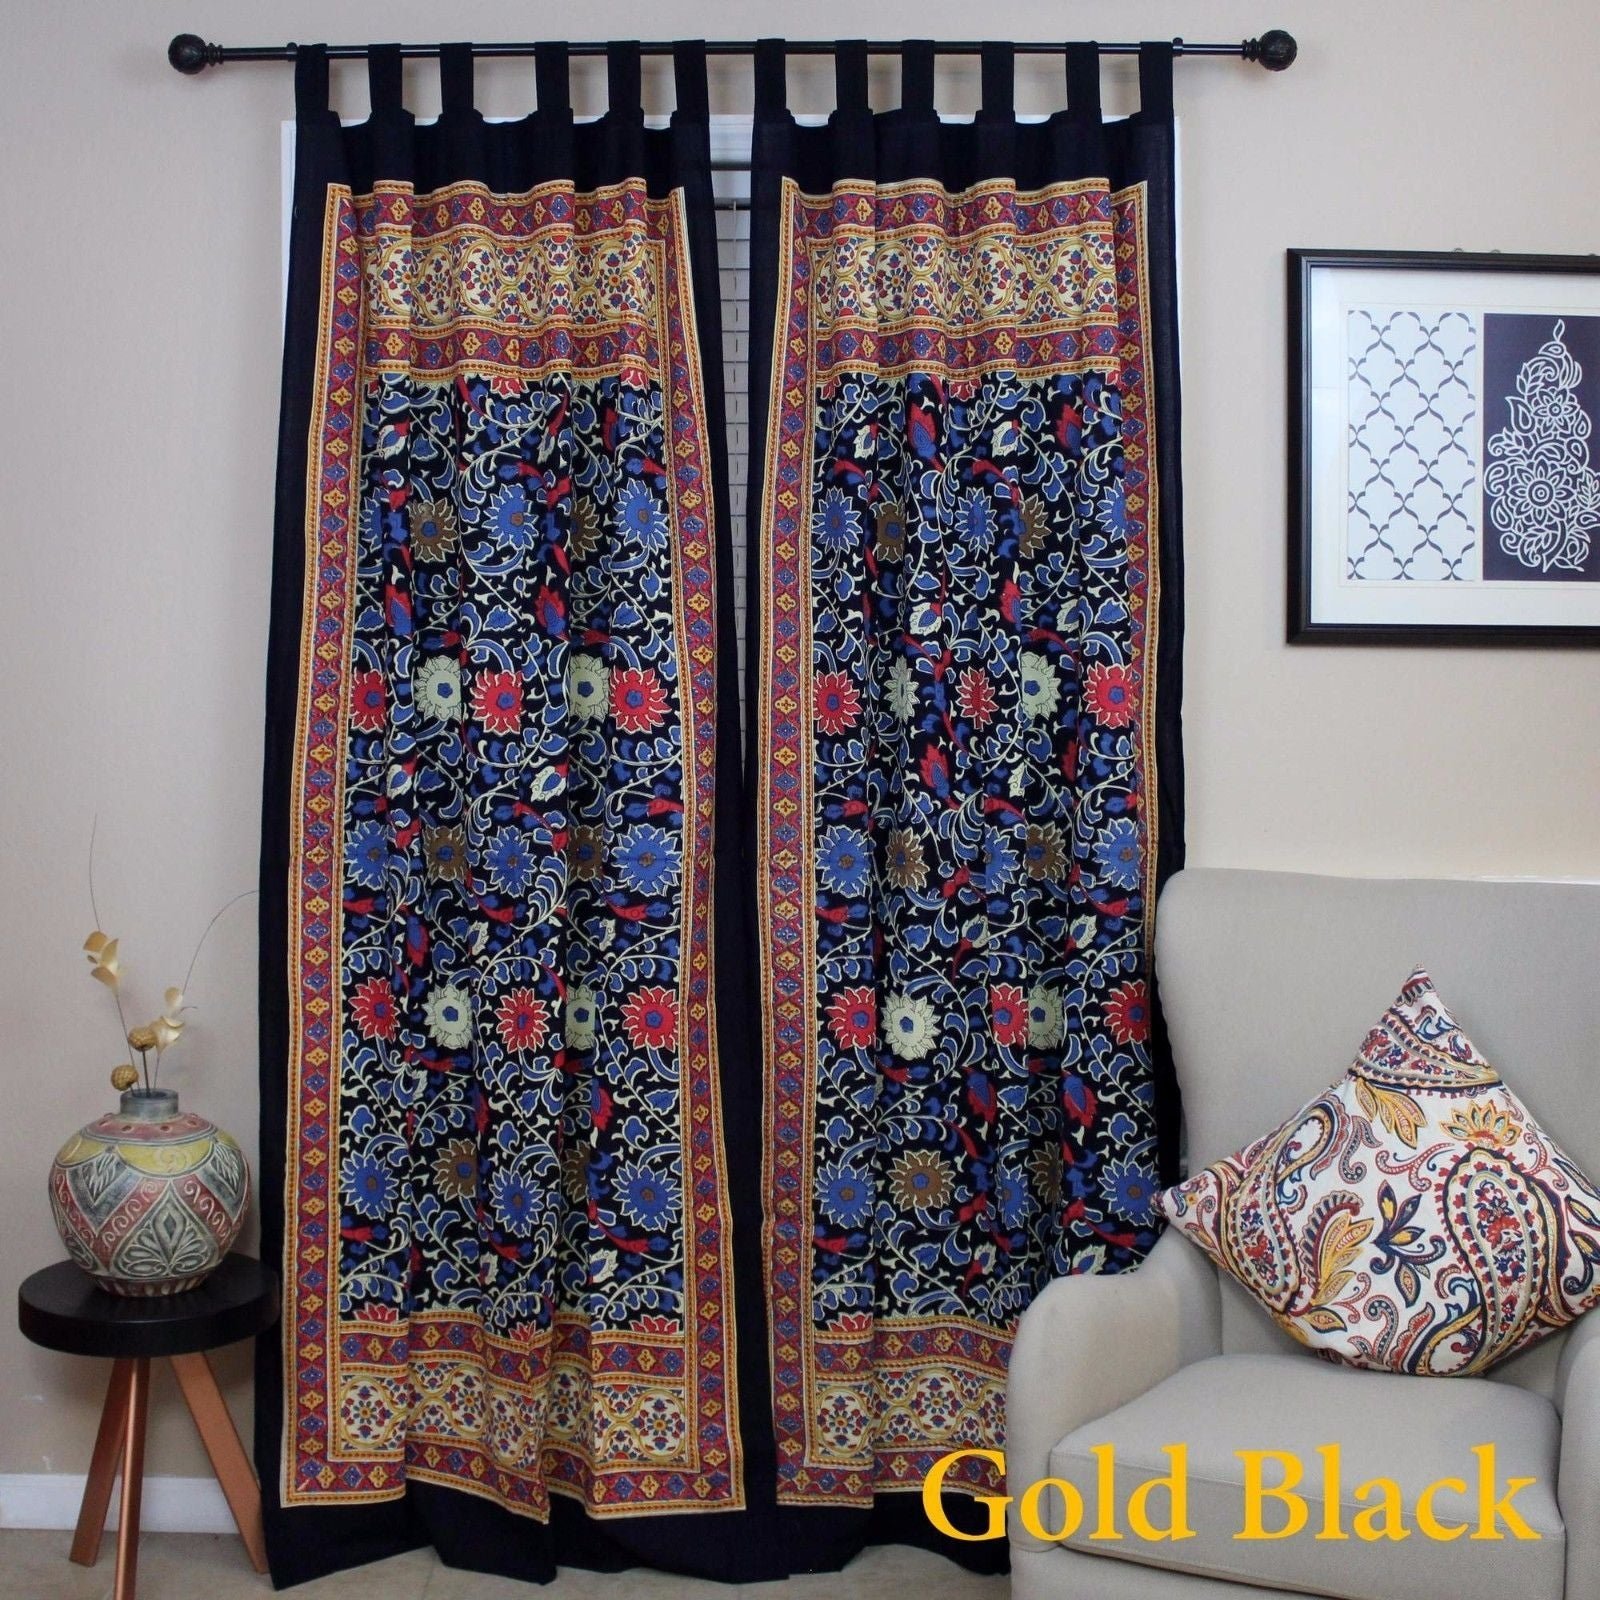 Handmade 100% Cotton Sunflower Floral Tab Top Curtain Drape Door Panel Navy Blue Gray Yellow Black Red 44x88 Inches - Thumbnail 18